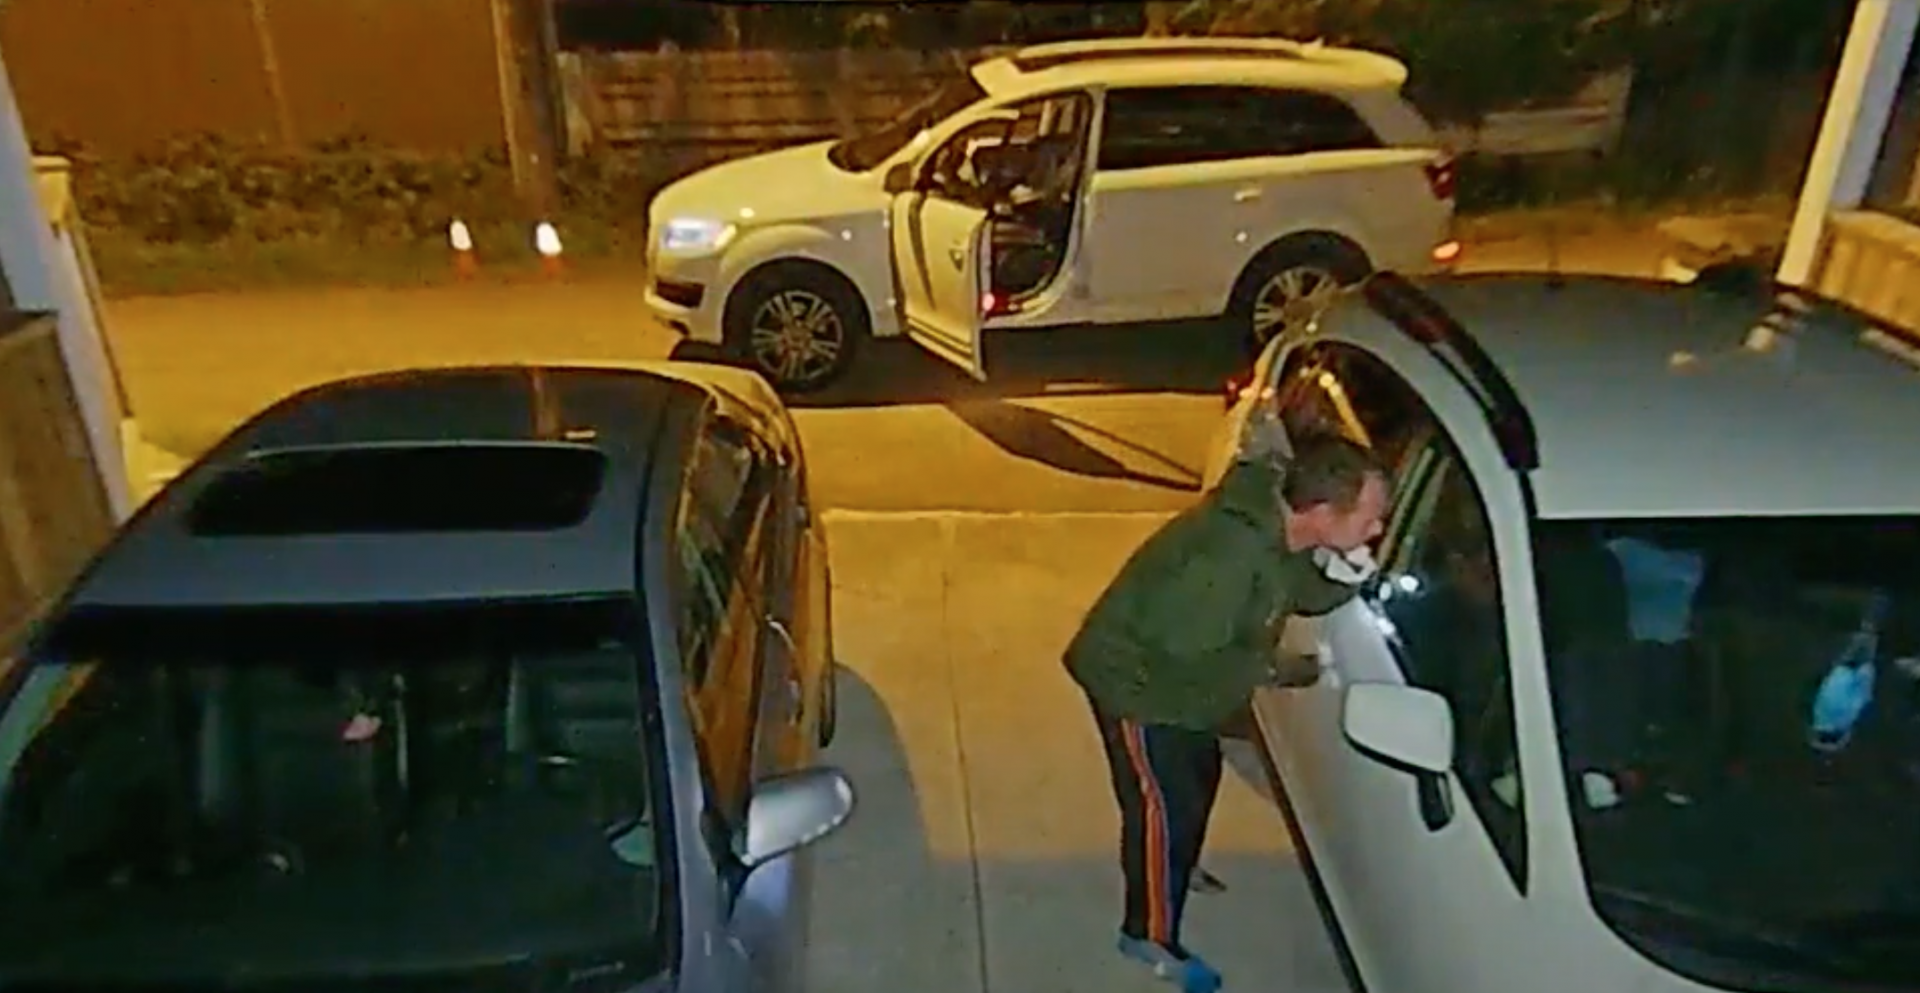 Thirty seconds is all Burnaby thief needs to steal from parked car (VIDEO)